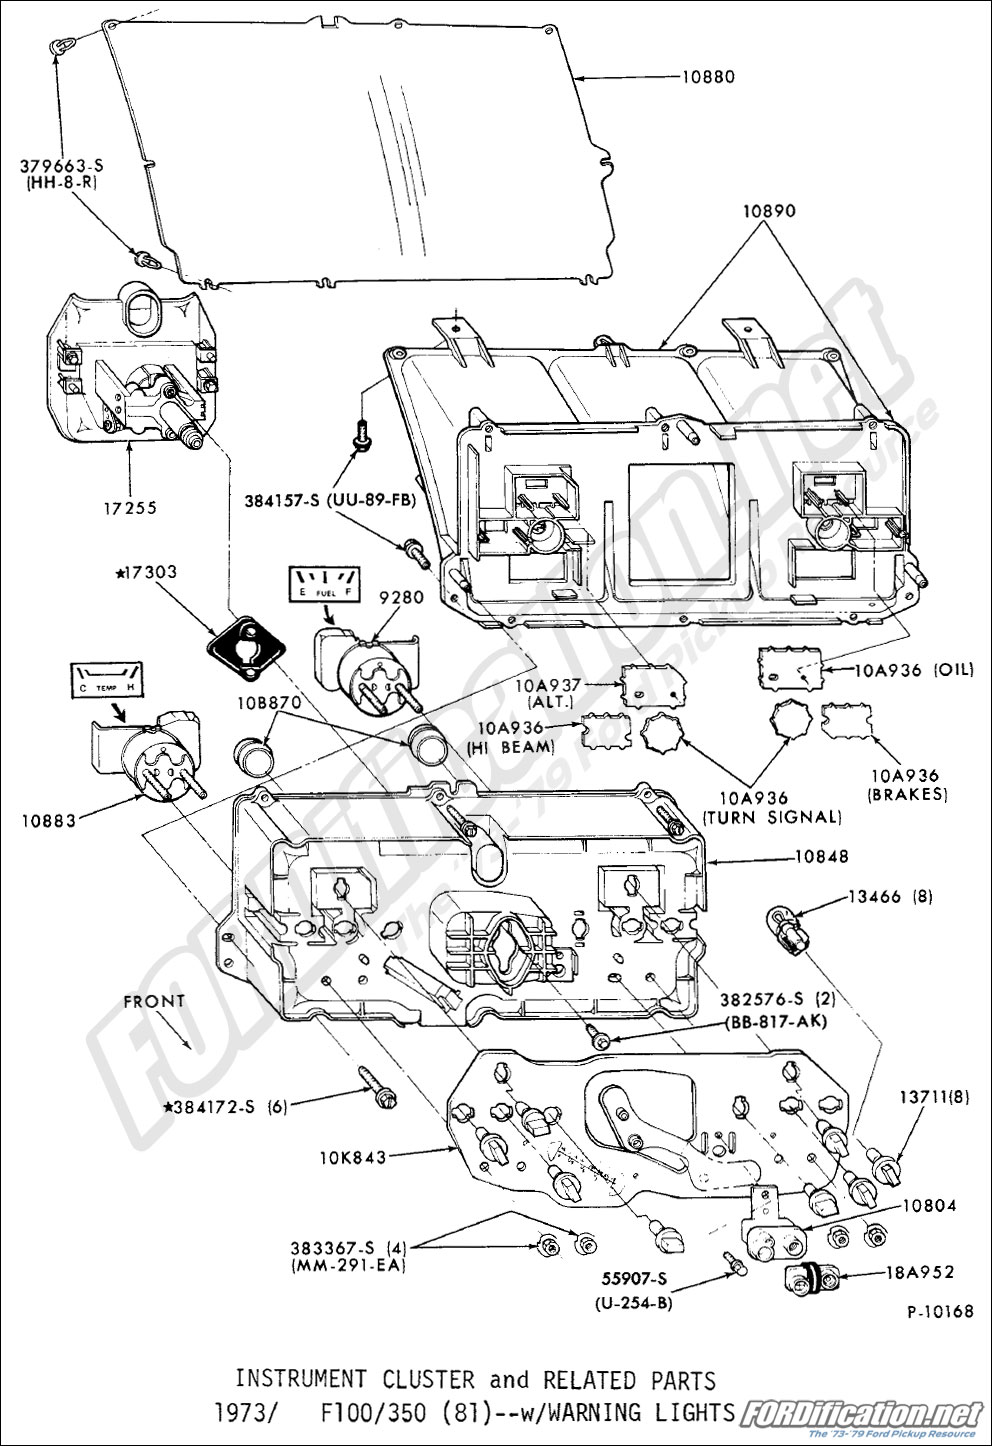 1973 chevy c20 wiring diagram  1973  free engine image for user manual download